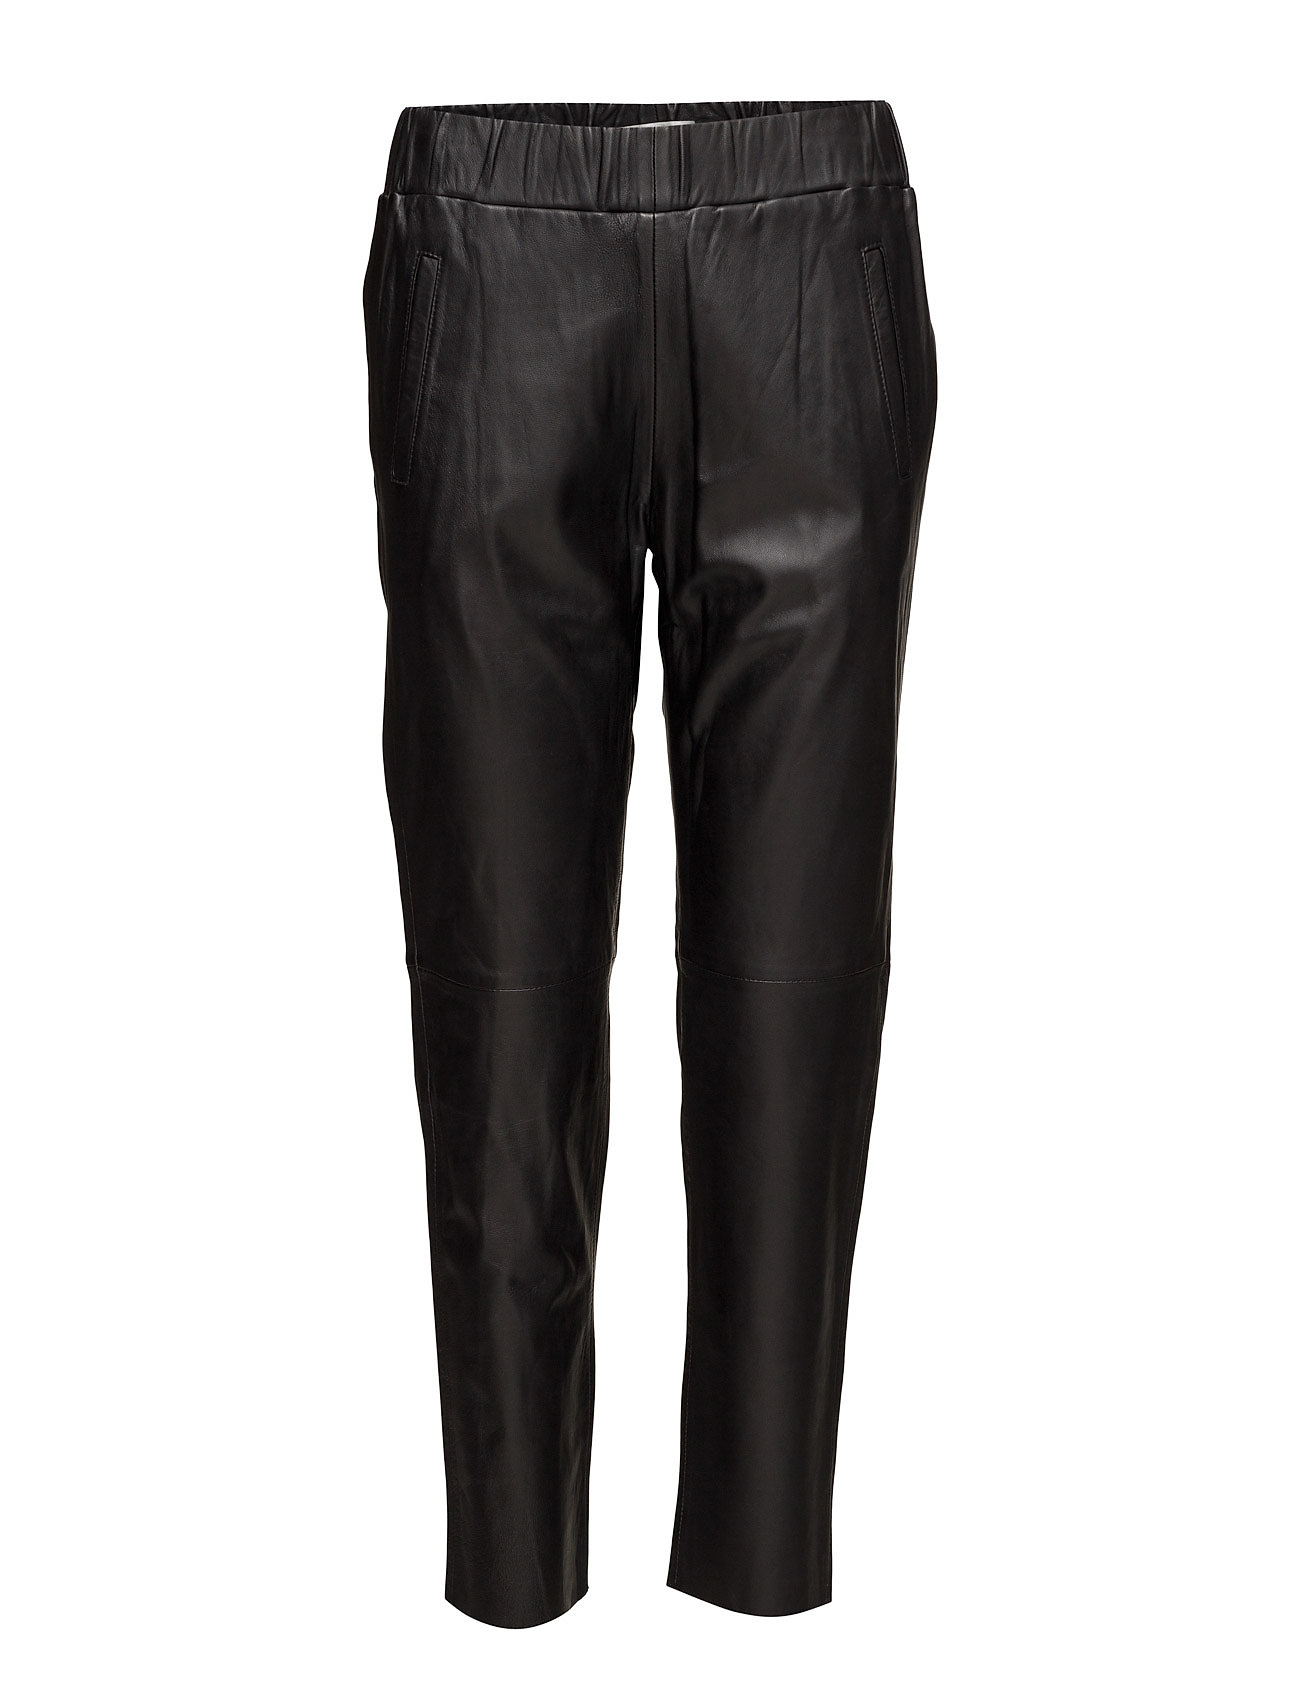 Image of Noni Joggers Ii Leather Leggings/Bukser Sort Stand (3240451885)